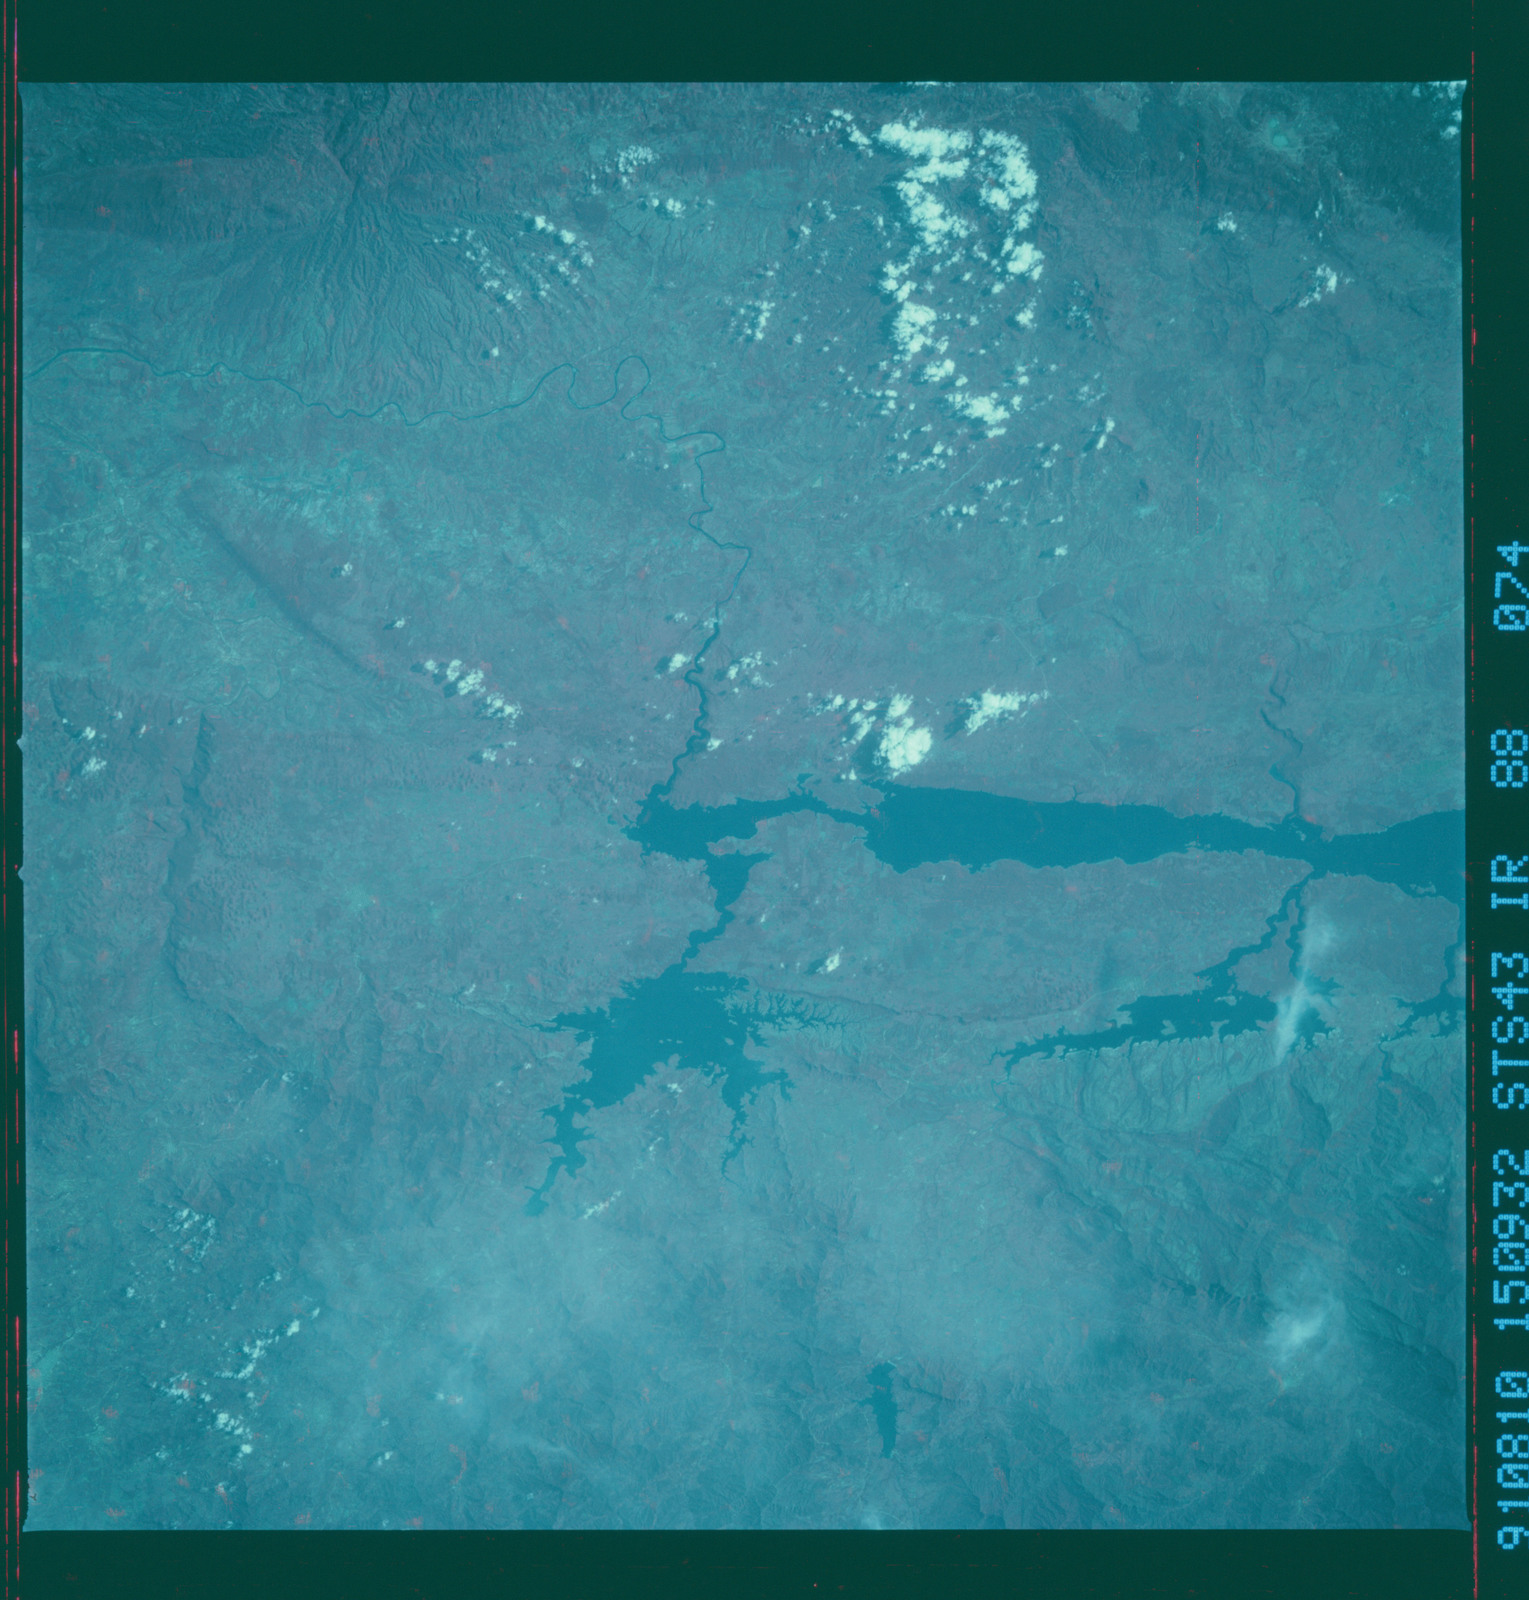 S43-88-074 - STS-043 - STS-43 earth observations